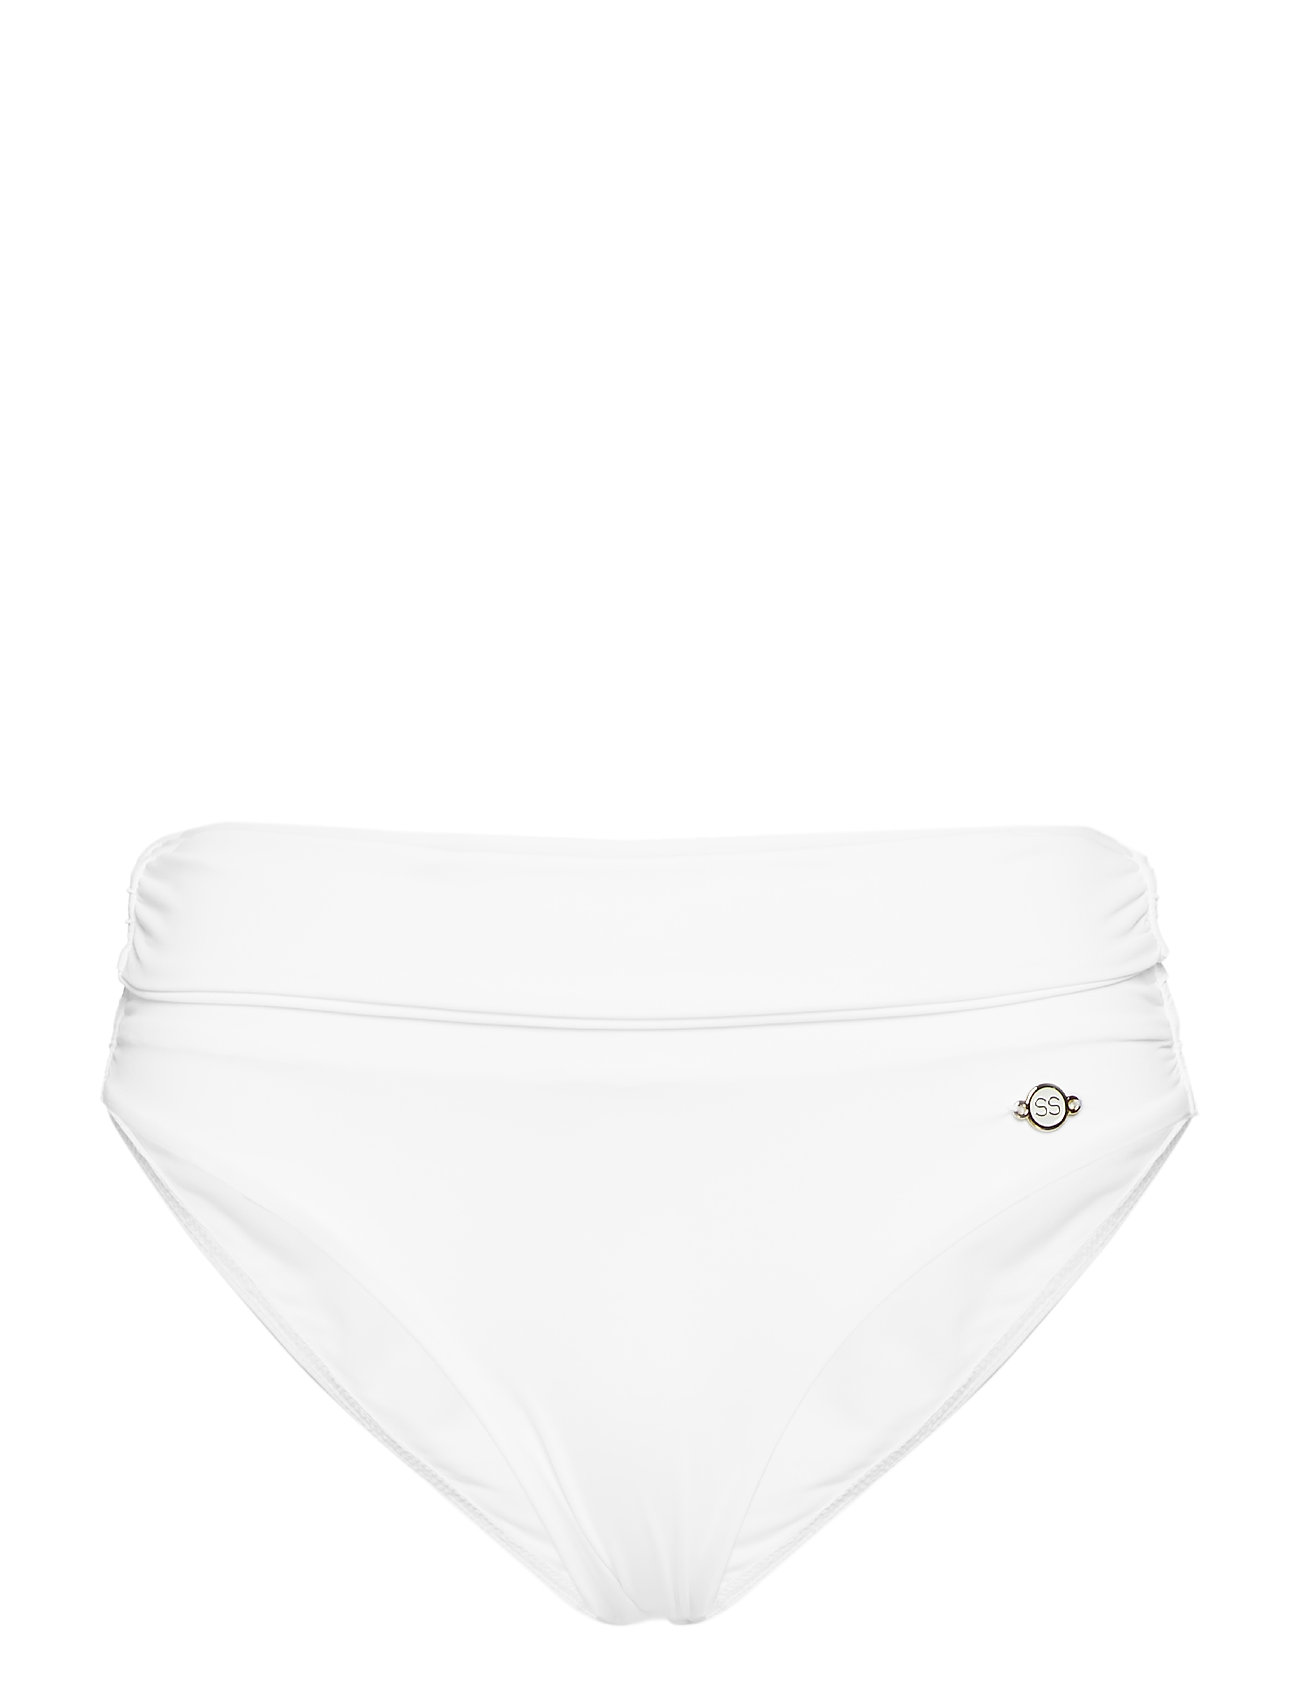 Sunseeker Solids 2019 Full Classic Pant - WHITE